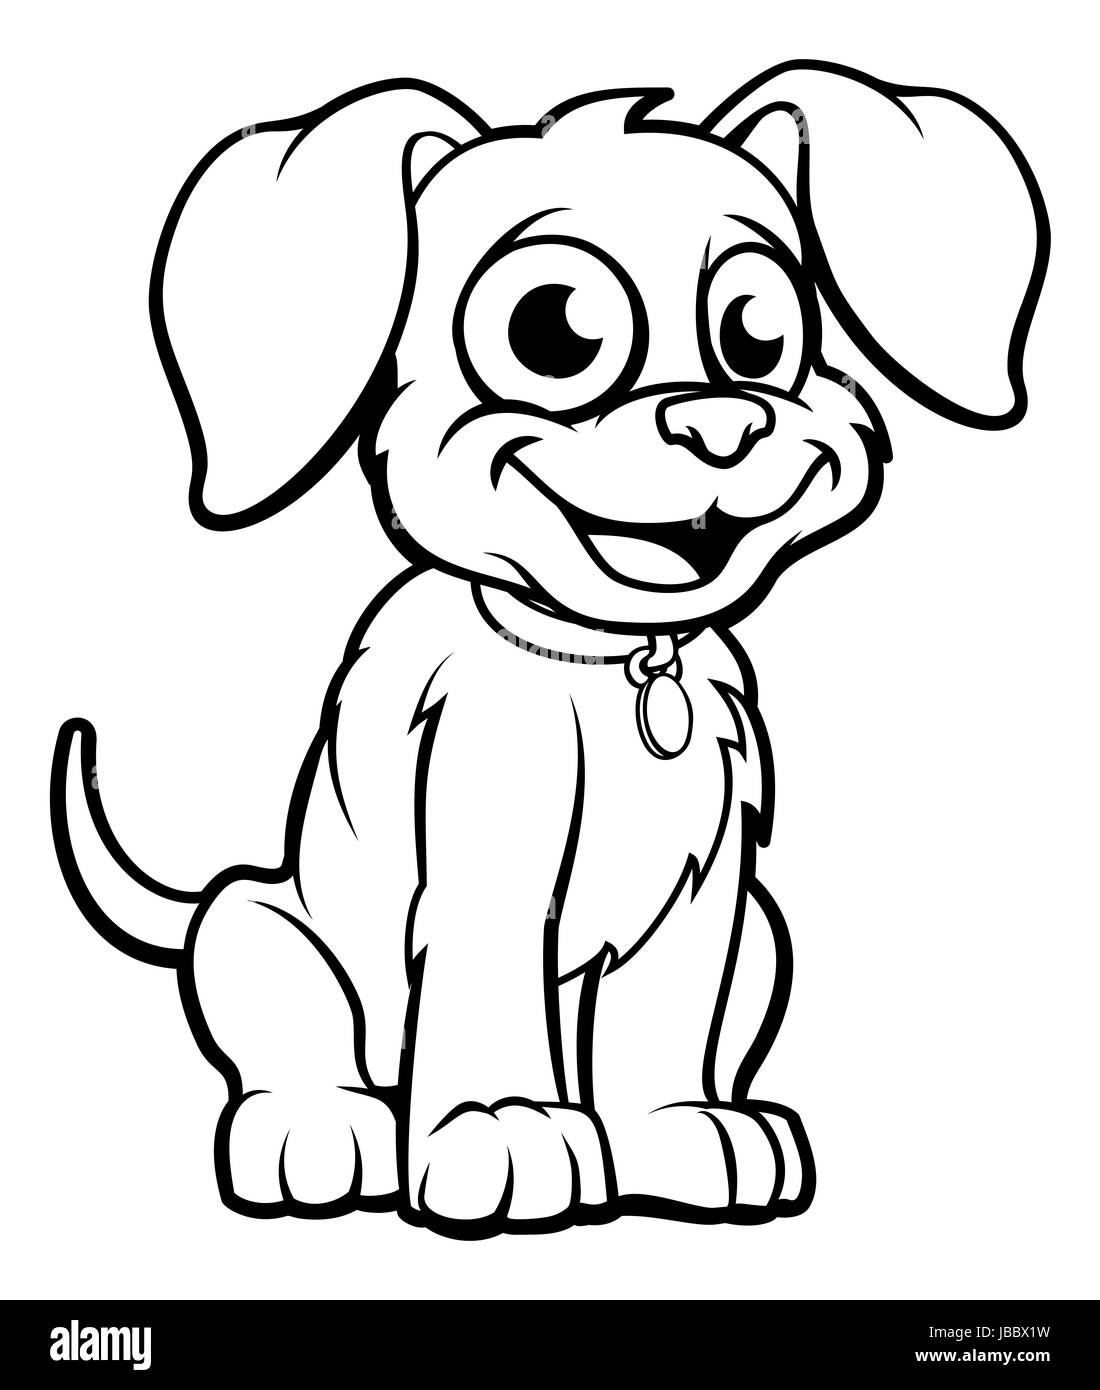 Cute cartoon dog character outline coloring illustration Stock Photo